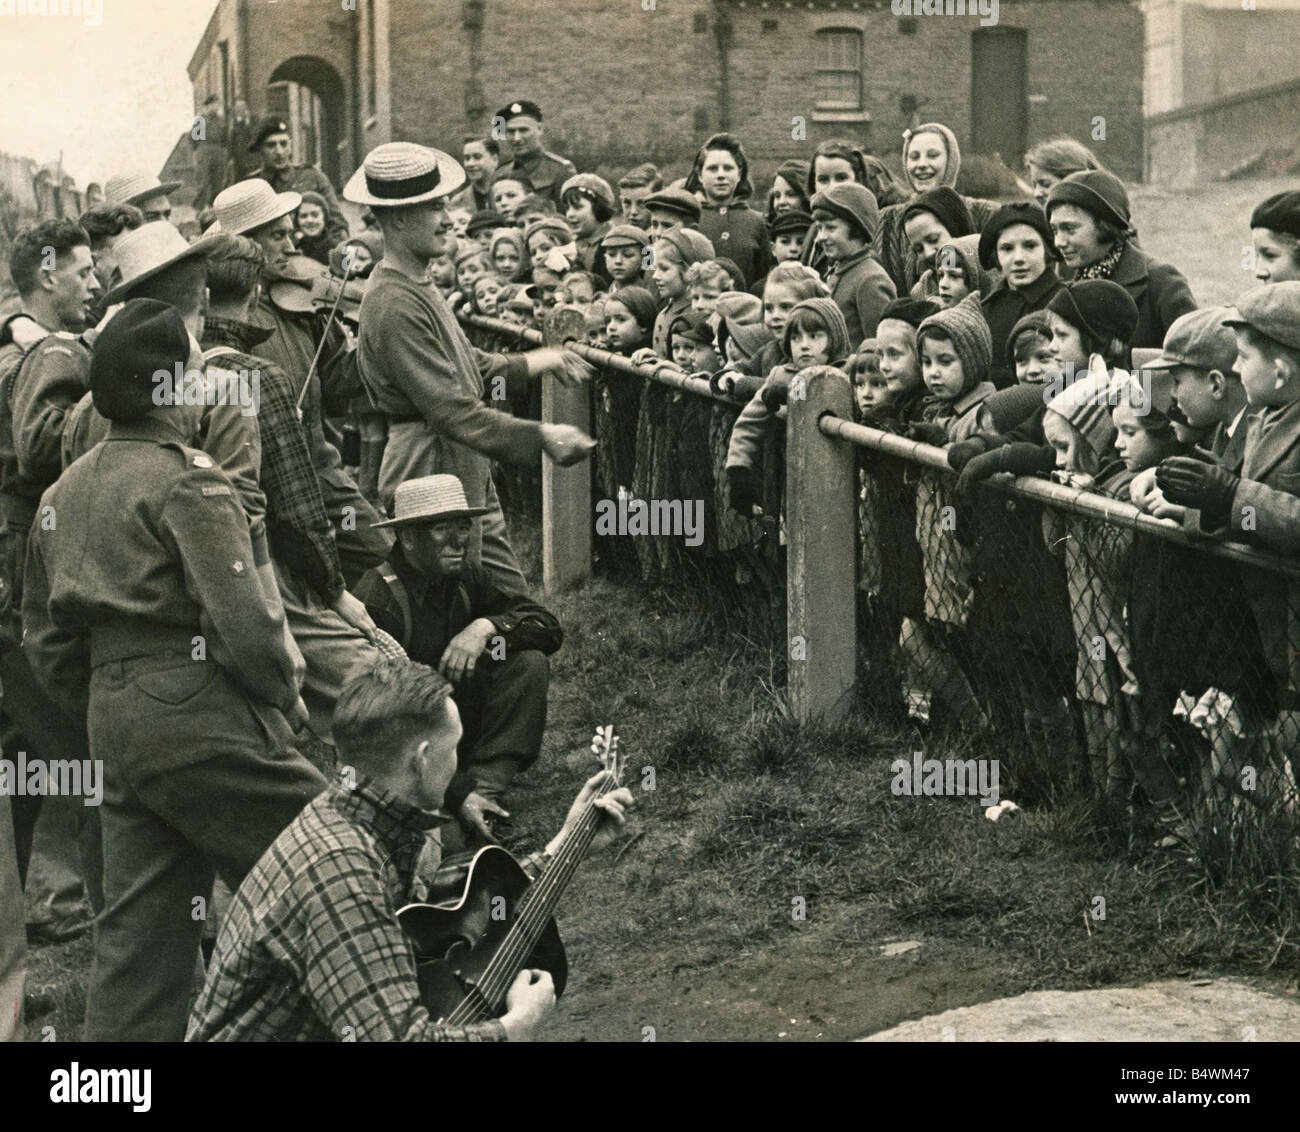 ABWW2 41 Canadian troops dressed as cowboys entertain a group of evacuated children - Stock Image